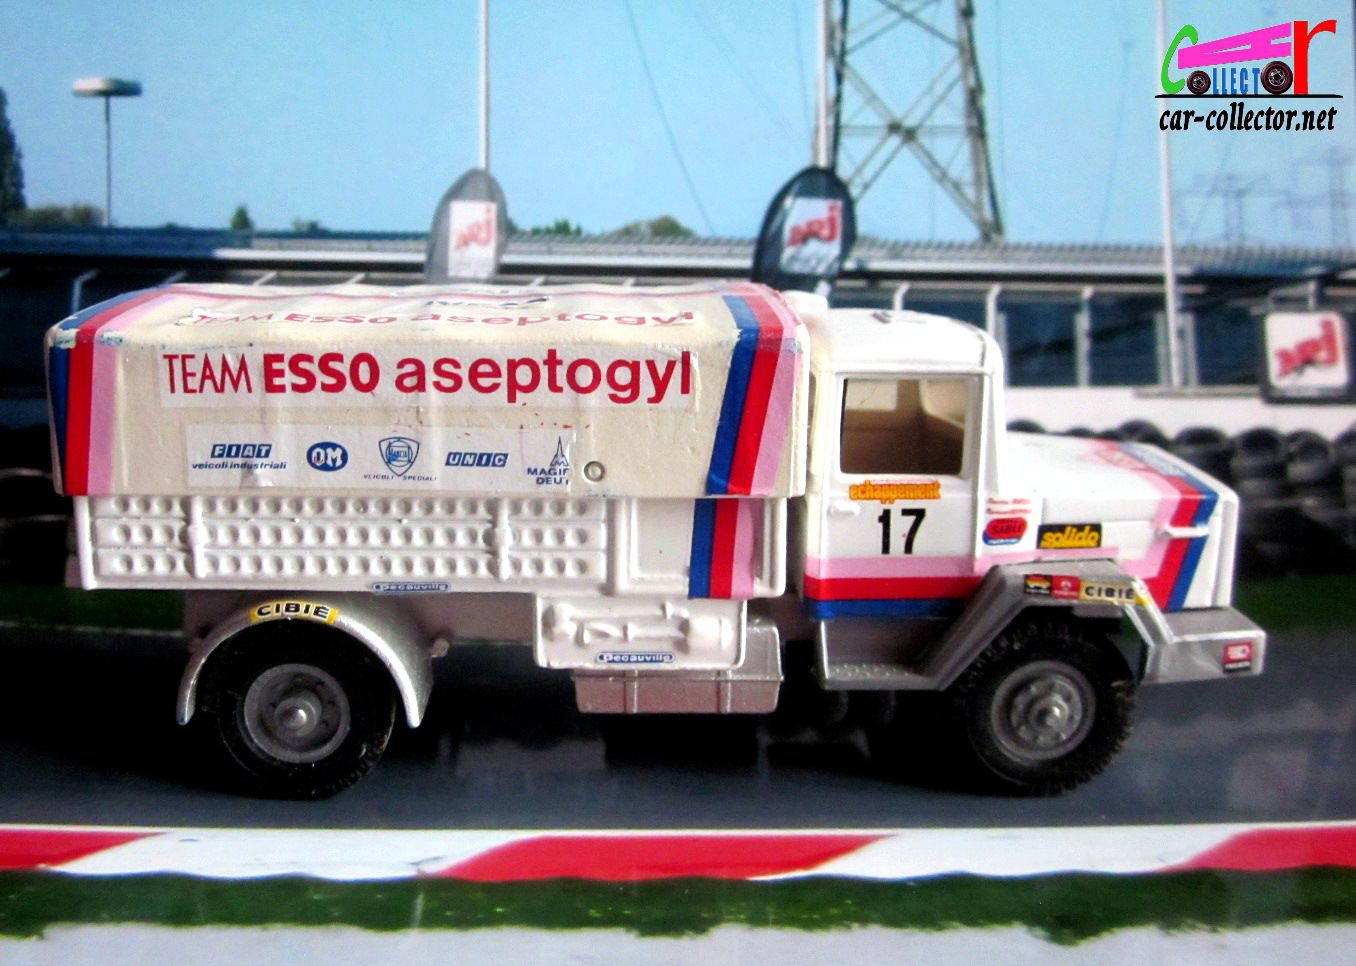 camion-iveco-4x4-190-pac-rallye-transafrica-1980-aseptogyl-diadermine-solido-1-43